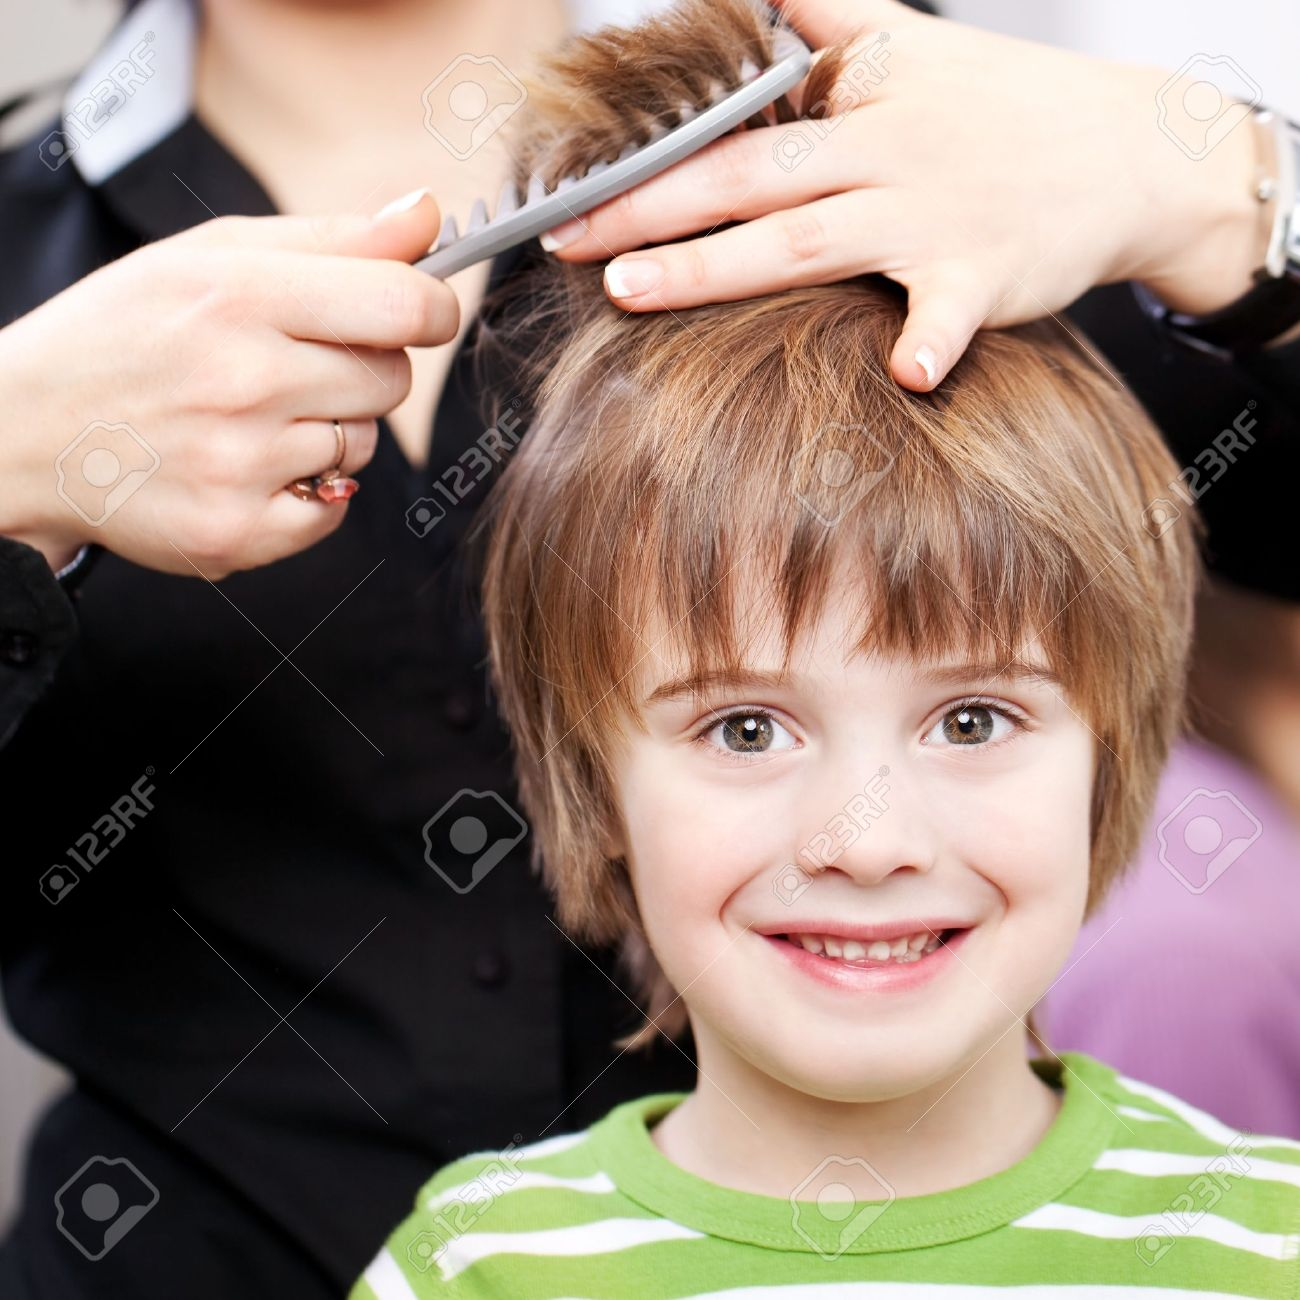 Beautiful young child with large expressive eyes at the hairdresser having a haircut Stock Photo - 21235153